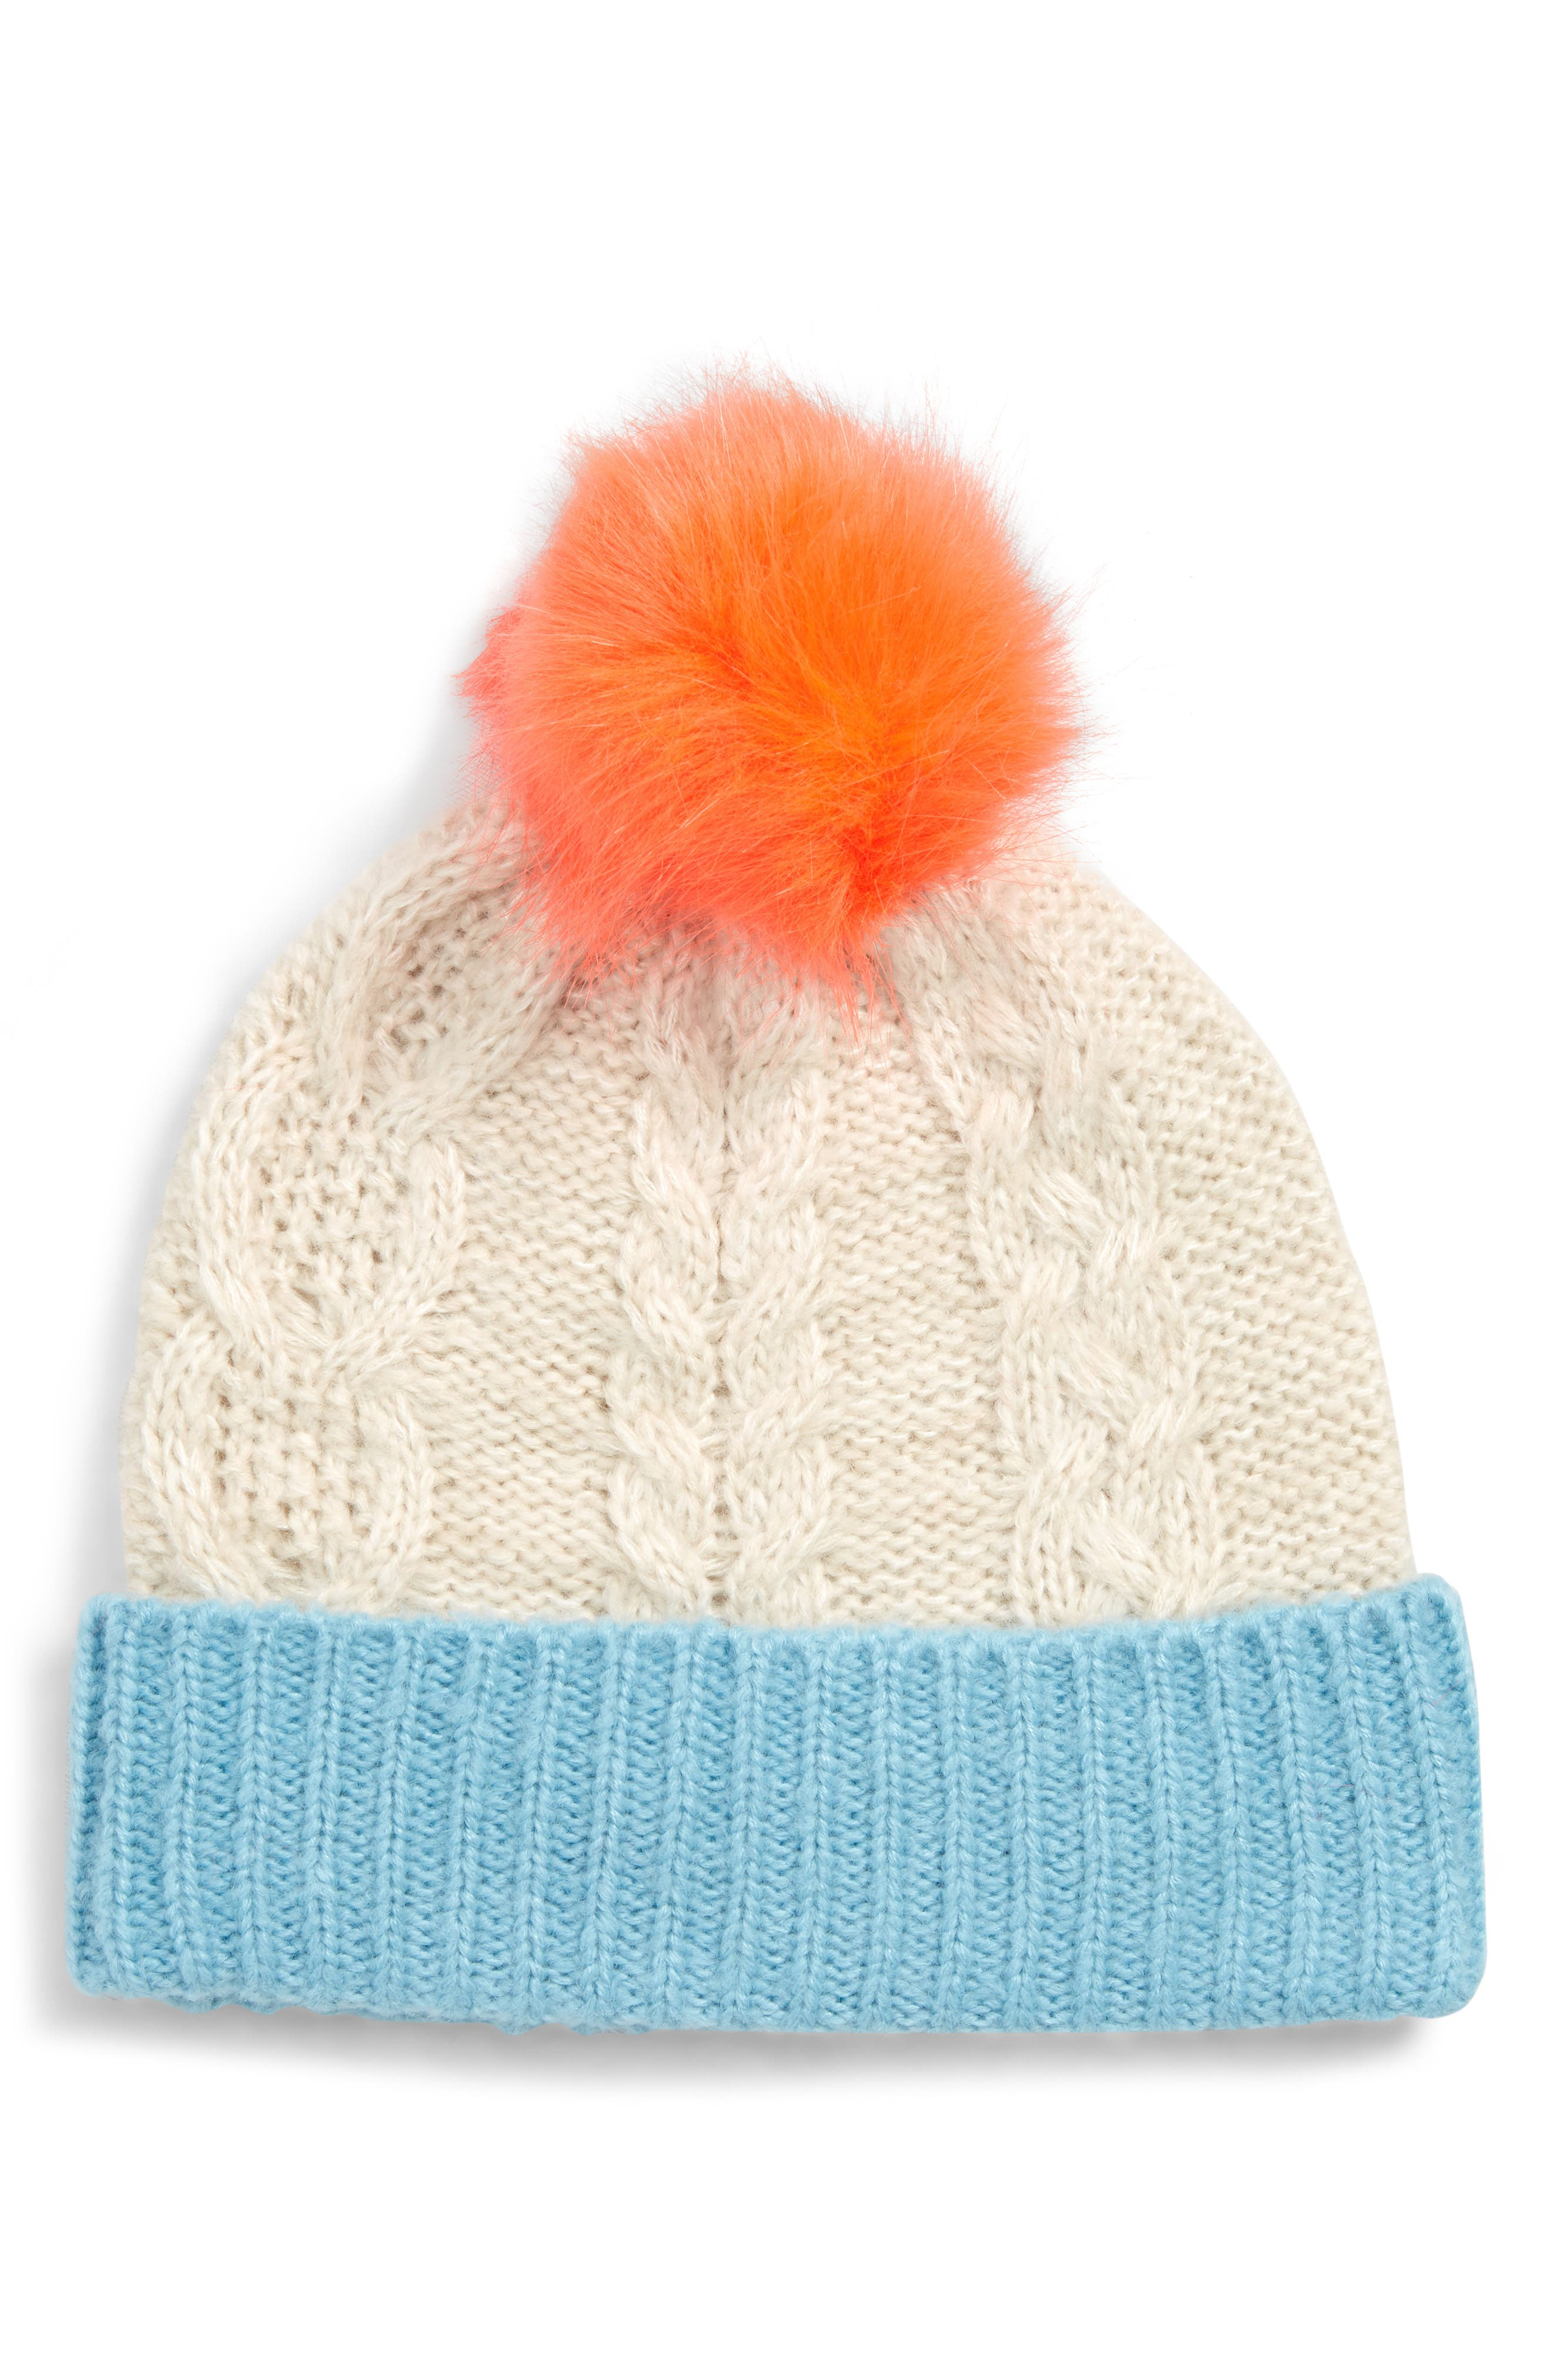 Cabled Beanie with Faux Fur Pom,                             Main thumbnail 1, color,                             ECR ECRU MARL